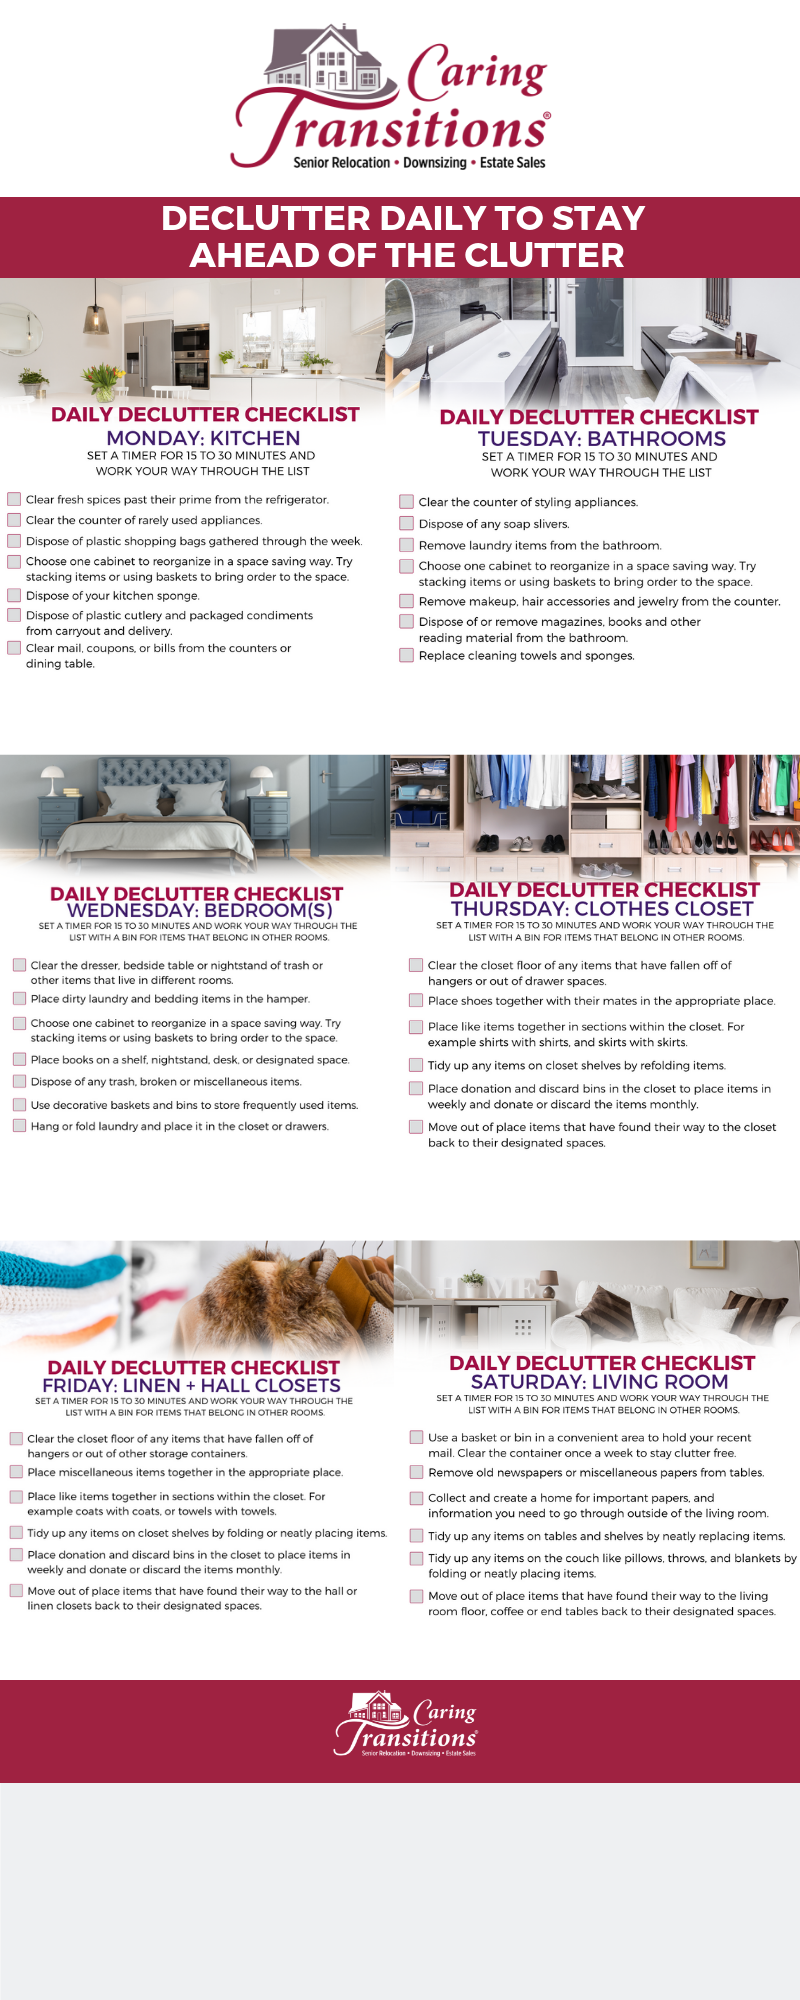 What Better Way To Improve Your Quality Of Life Than To Create A Clean And  Orderly Environment? These Questions Can Help You Decide If The Daily  Declutter ...